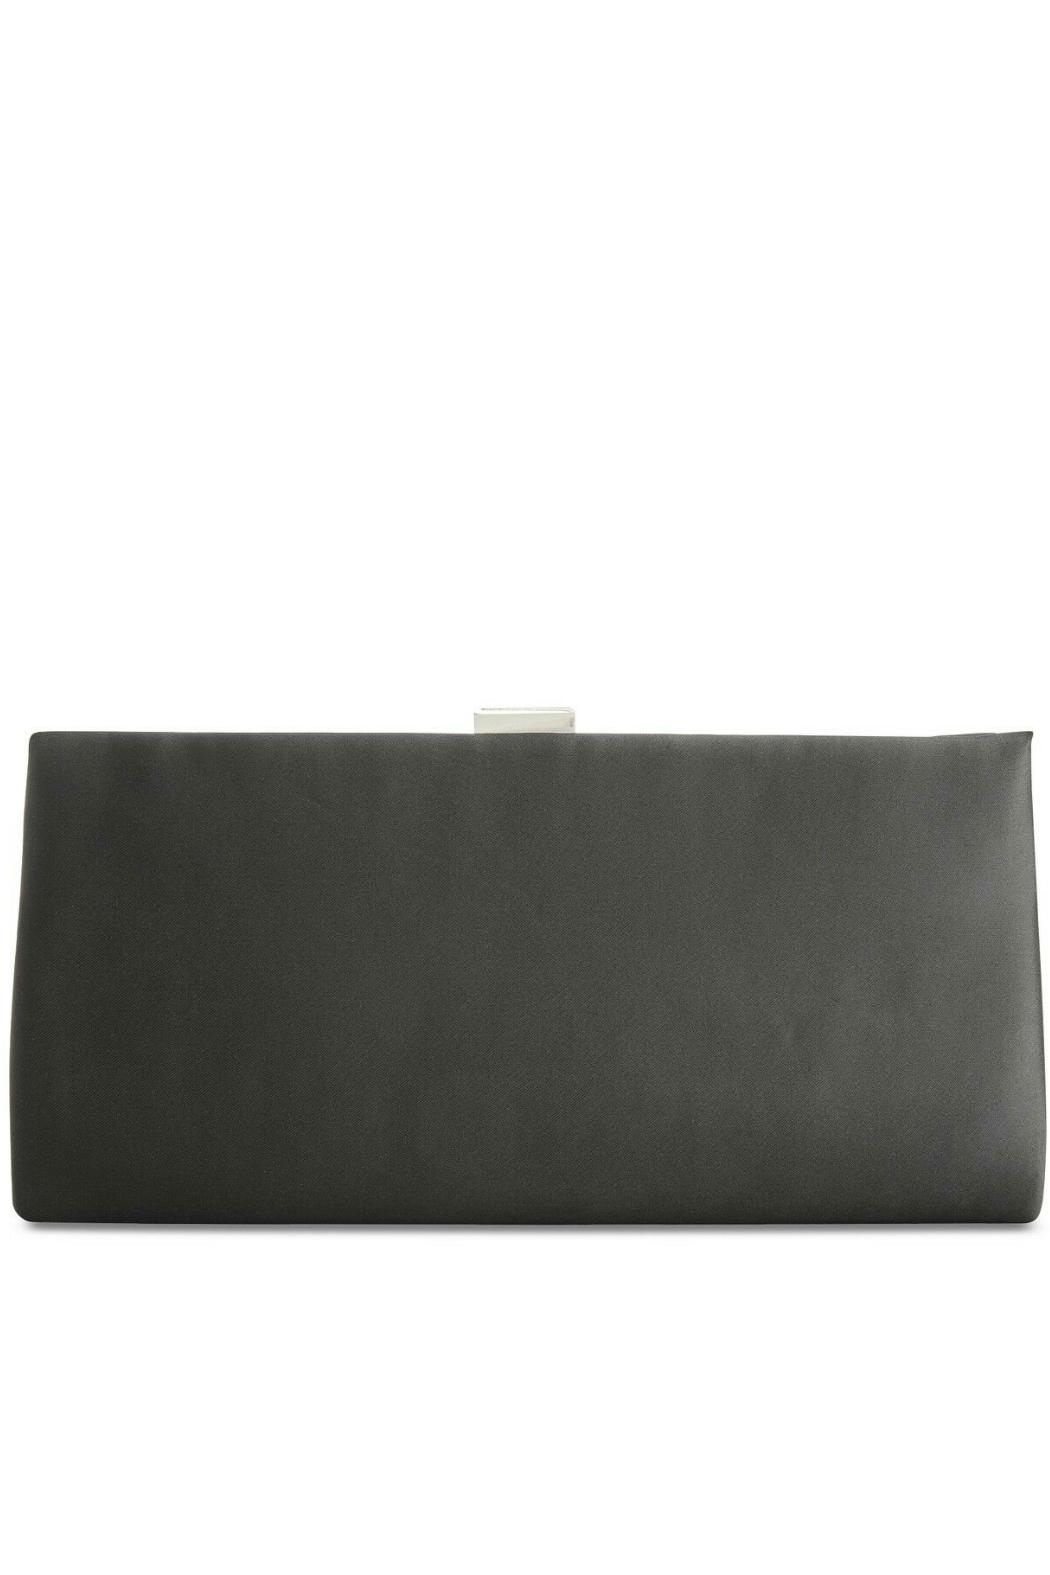 Adrianna Papell Norah Black-Beaded Clutch - Front Full Image